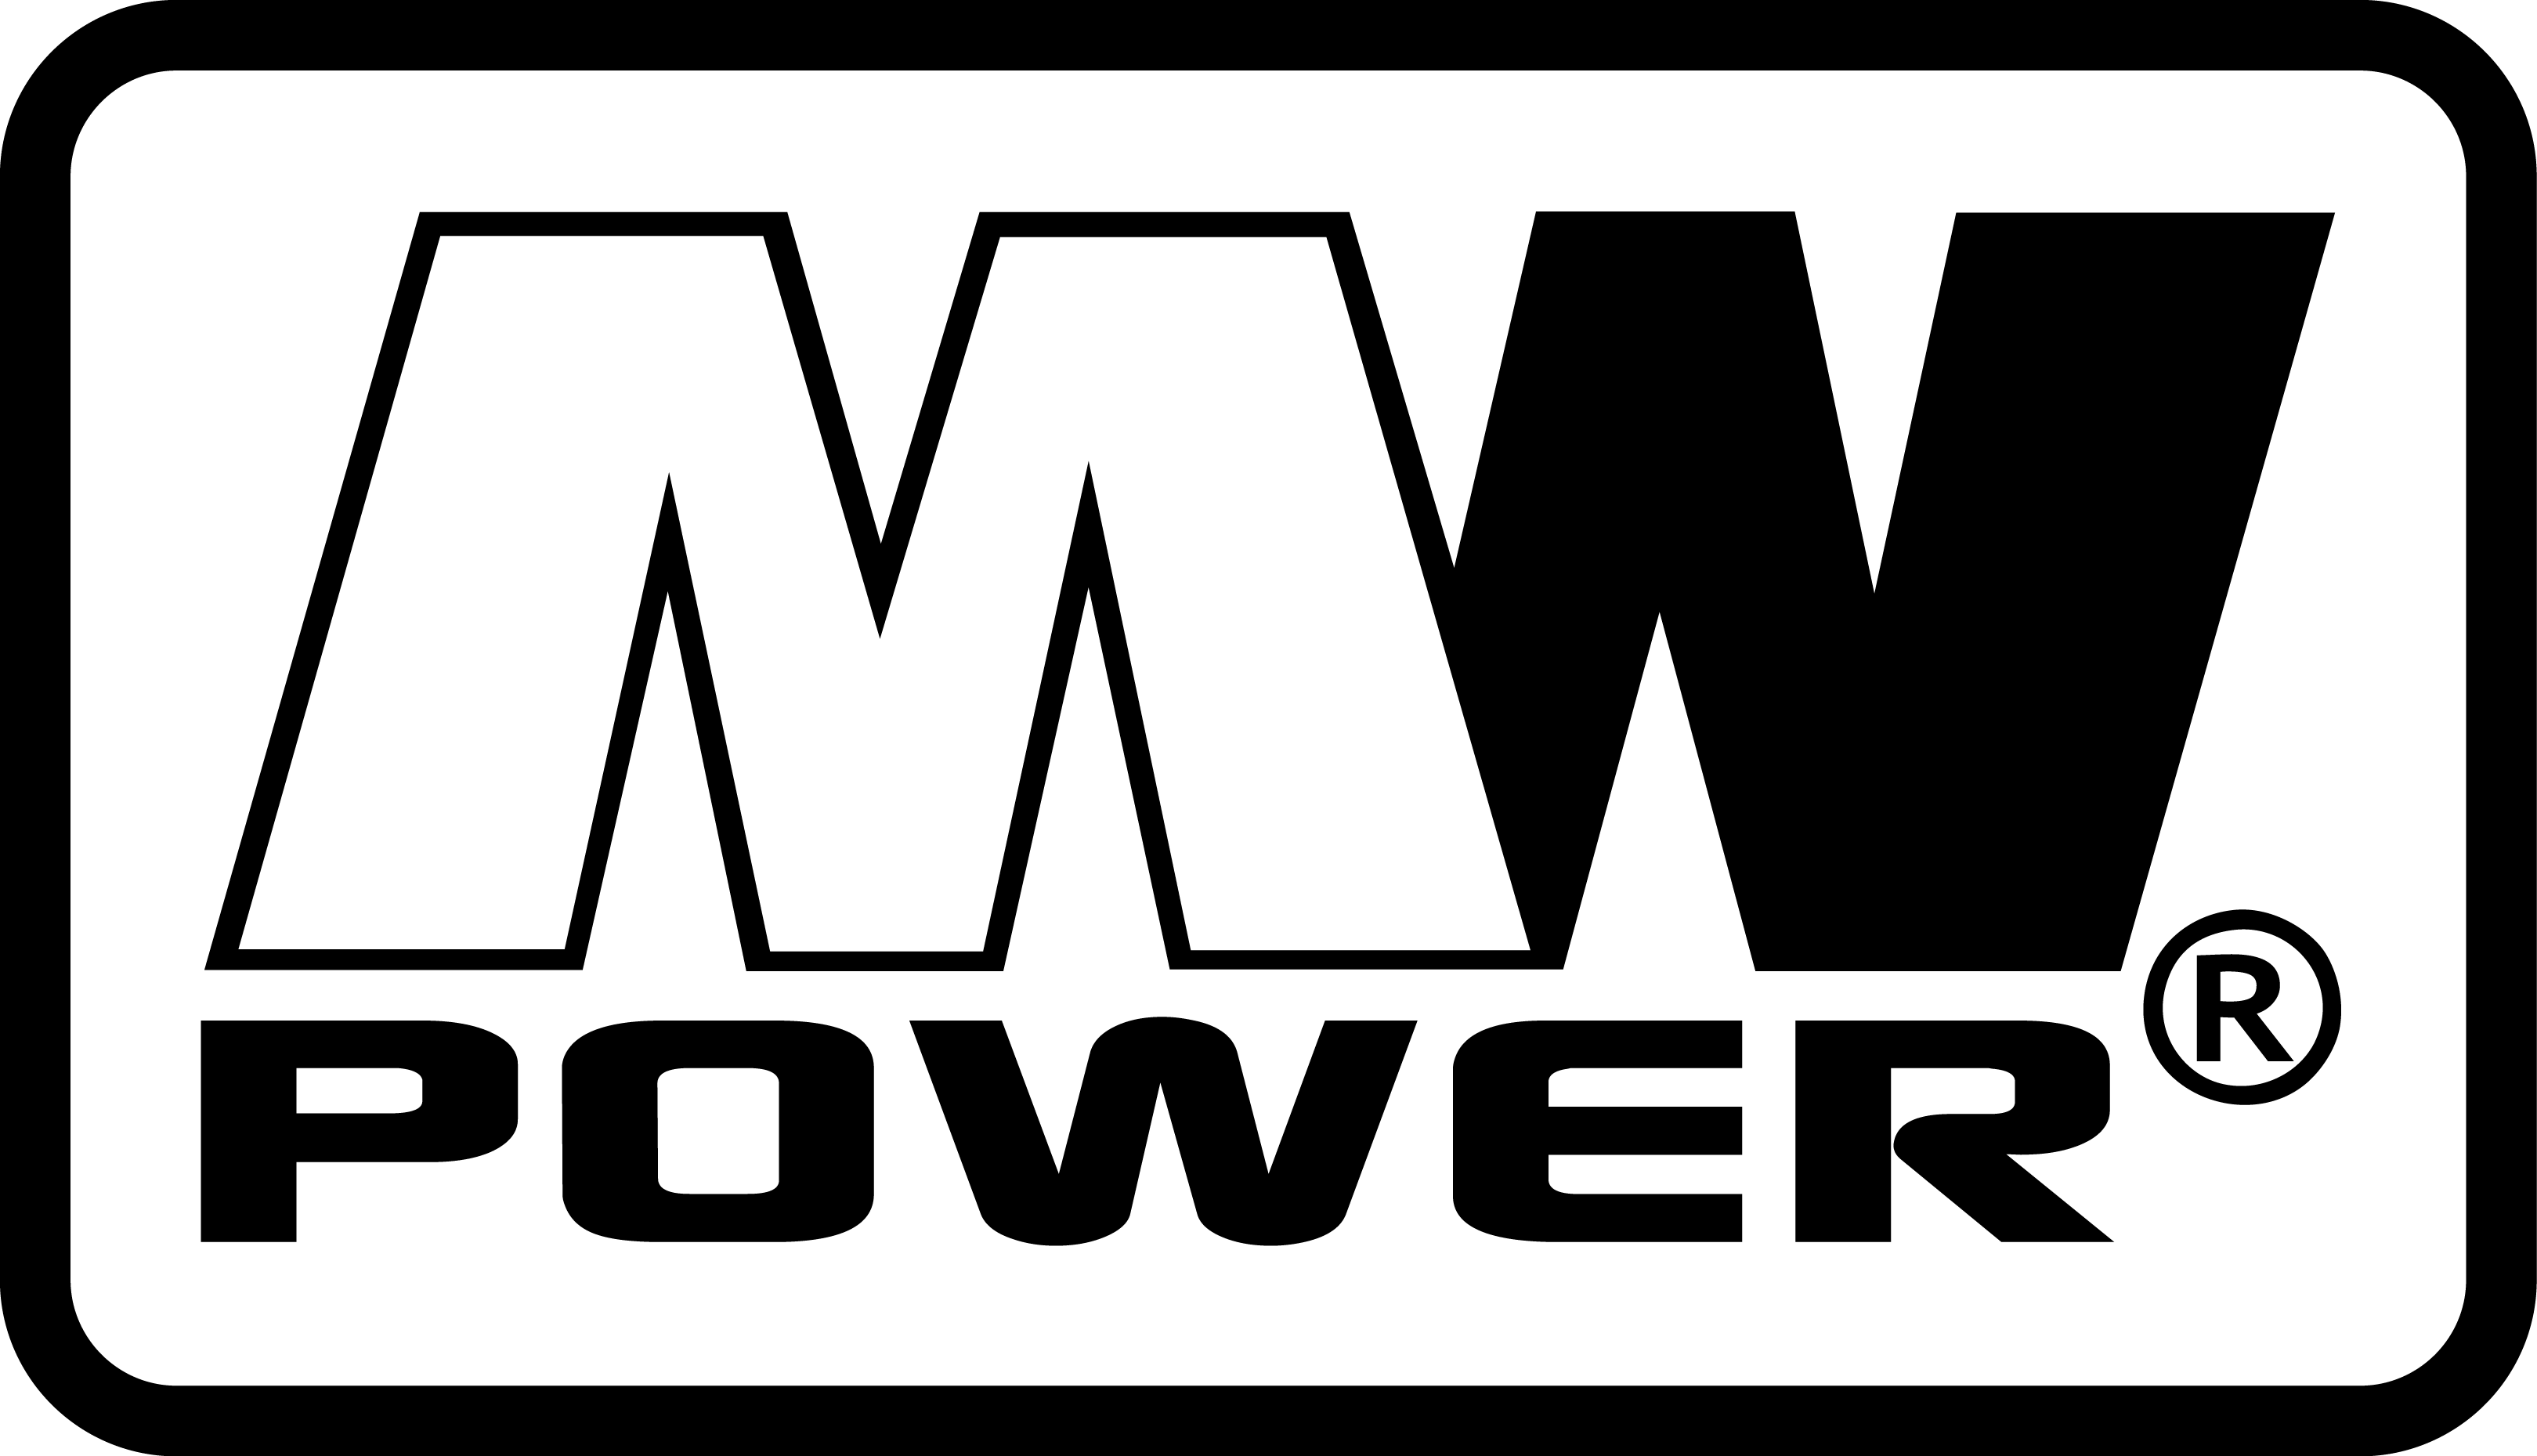 MW_Power.png